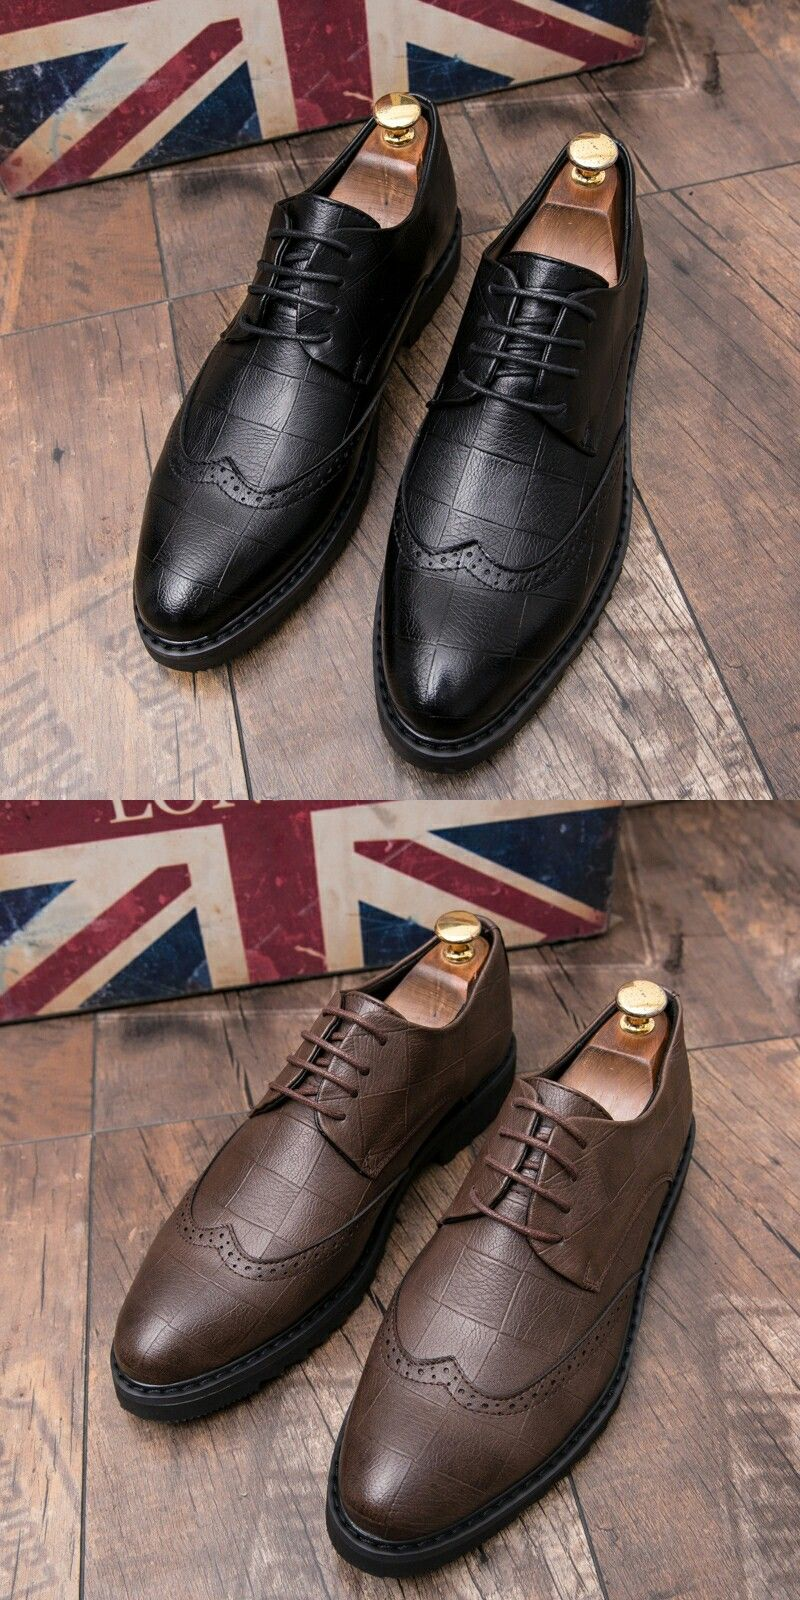 US  27.2 Prelesty Luxury Men s Pointed Toe Dress Shoes Carved Brogue Party Wedding  Oxford Business Stylist ba14b38278ea